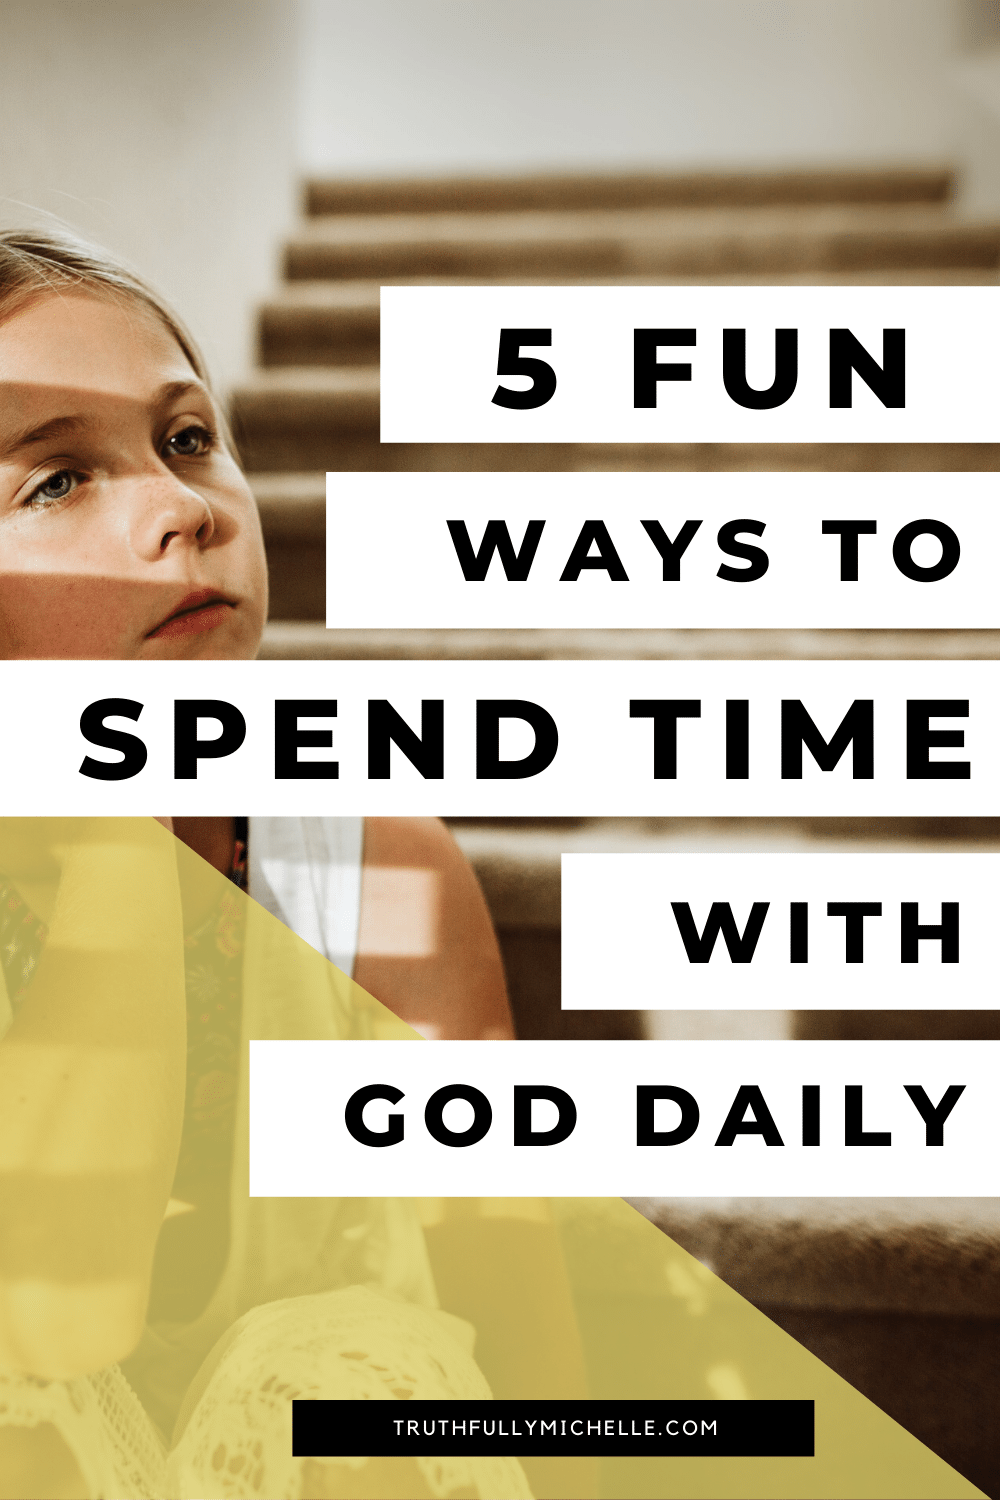 How to have quiet time with God ideas, Daily quiet time with God, Quiet time with God routine, Fun ways to spend time with God, Creative ways to spend time with God, When you spend time with God, Spending time with God Ideas, How to Spend time with God, Different ways to spend time with God, Importance of spending time with God, Benefits of spending time with God, Spend time with God daily